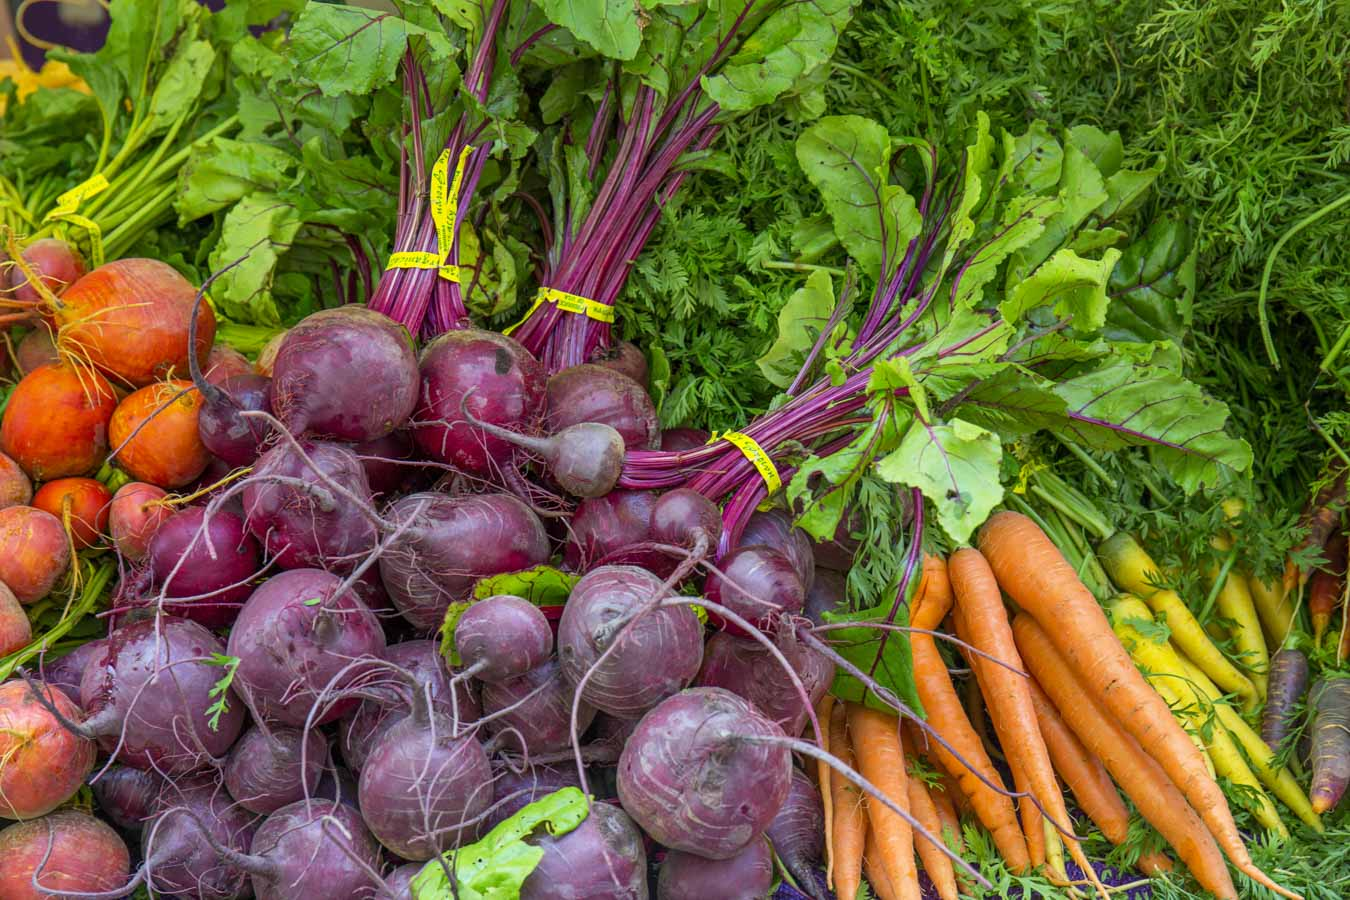 Beets on the market